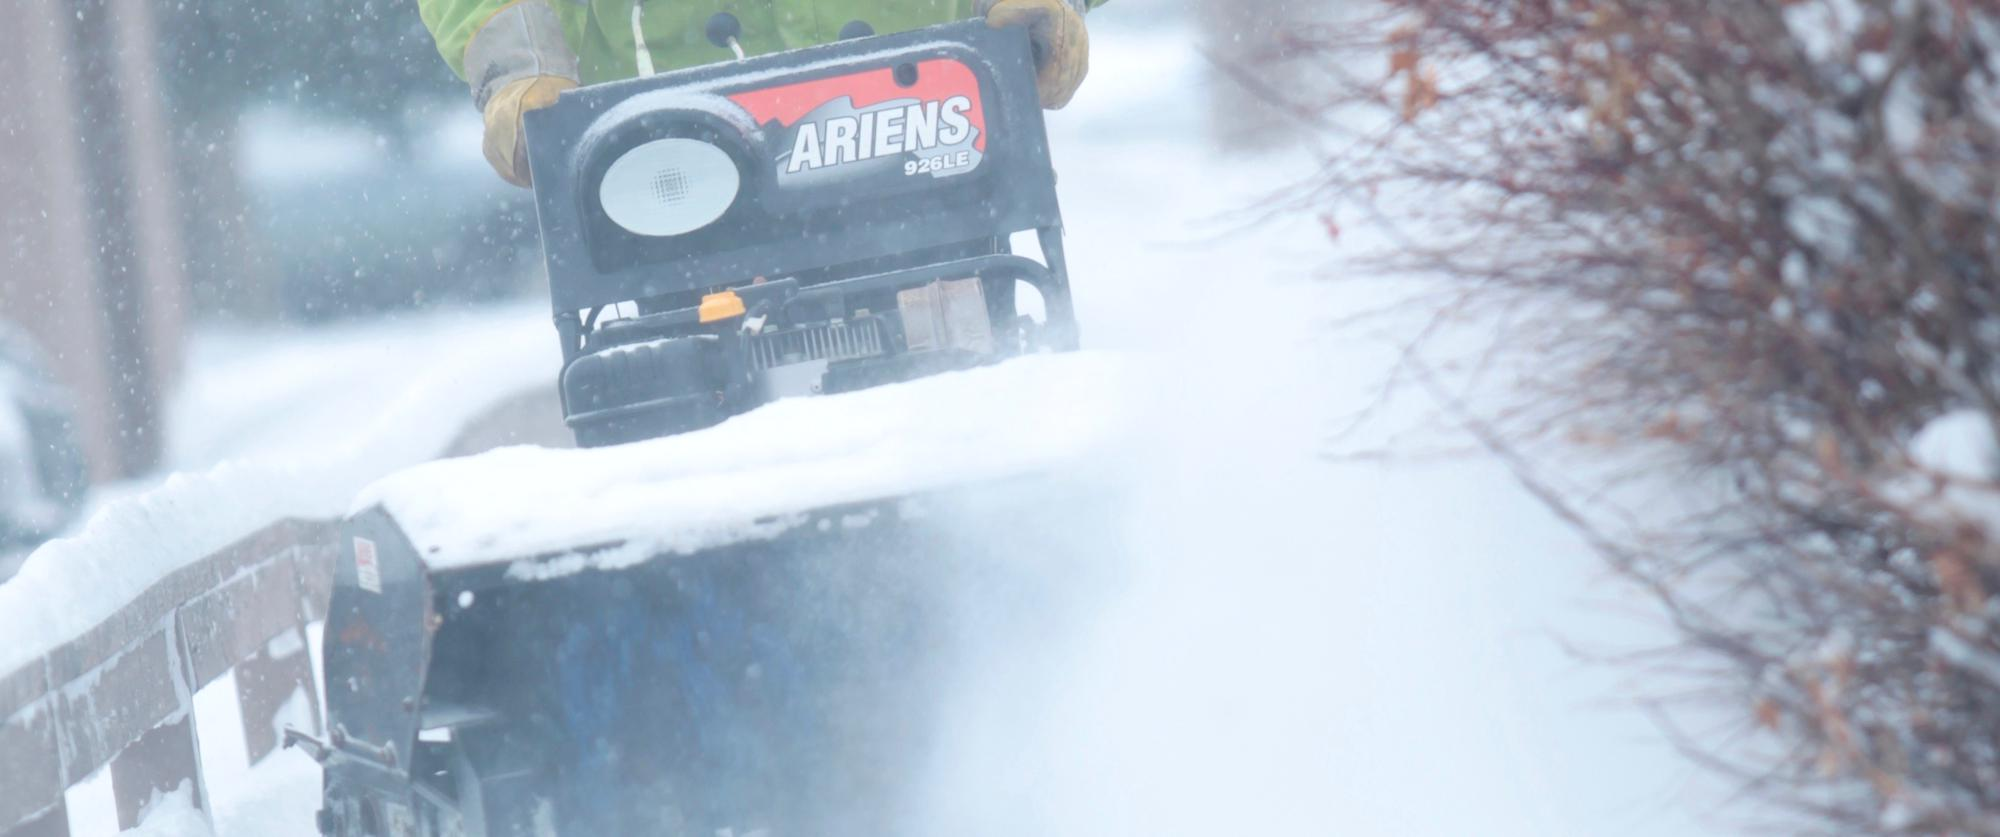 Clearing residential sidewalks with a snow blower